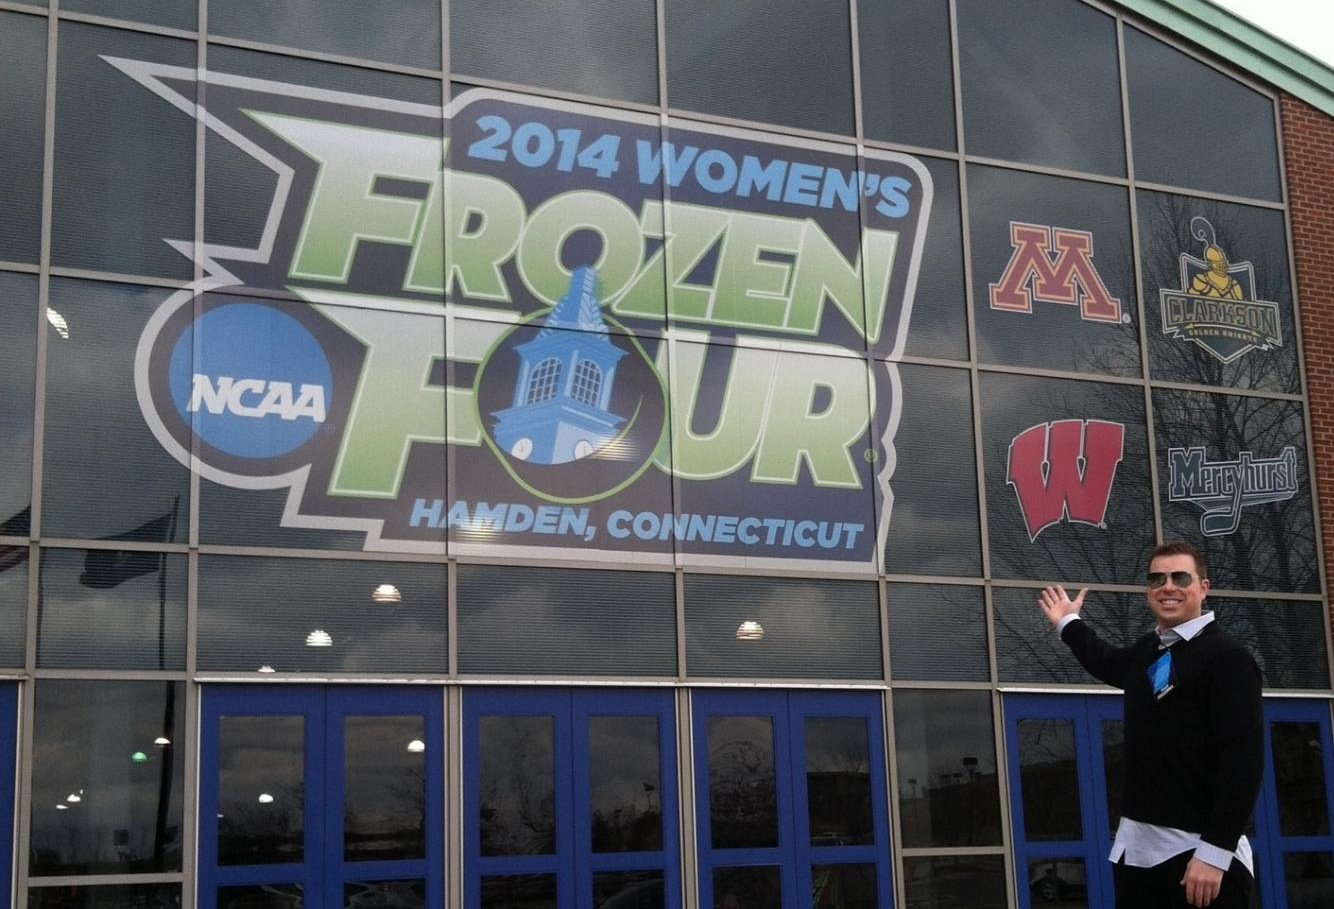 Jay outside the Frozen Four Arena